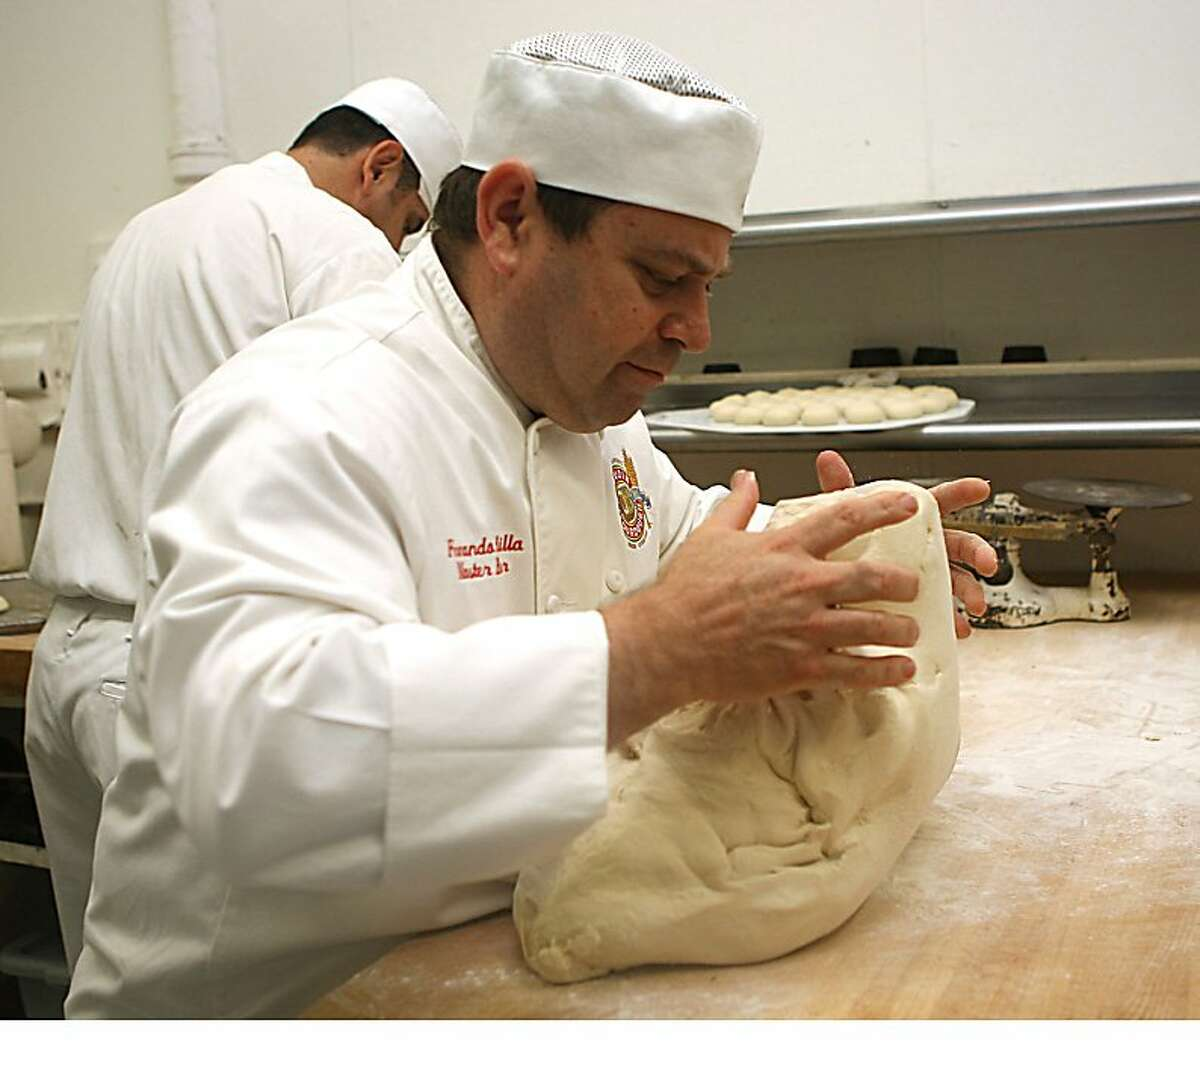 Master baker Fernando Padilla working on some dough at Boudin Bakery on 10th Ave. in San Francisco, California, on Wednesday, September 14, 2011. Fernando apprenticed with former Boudin owner